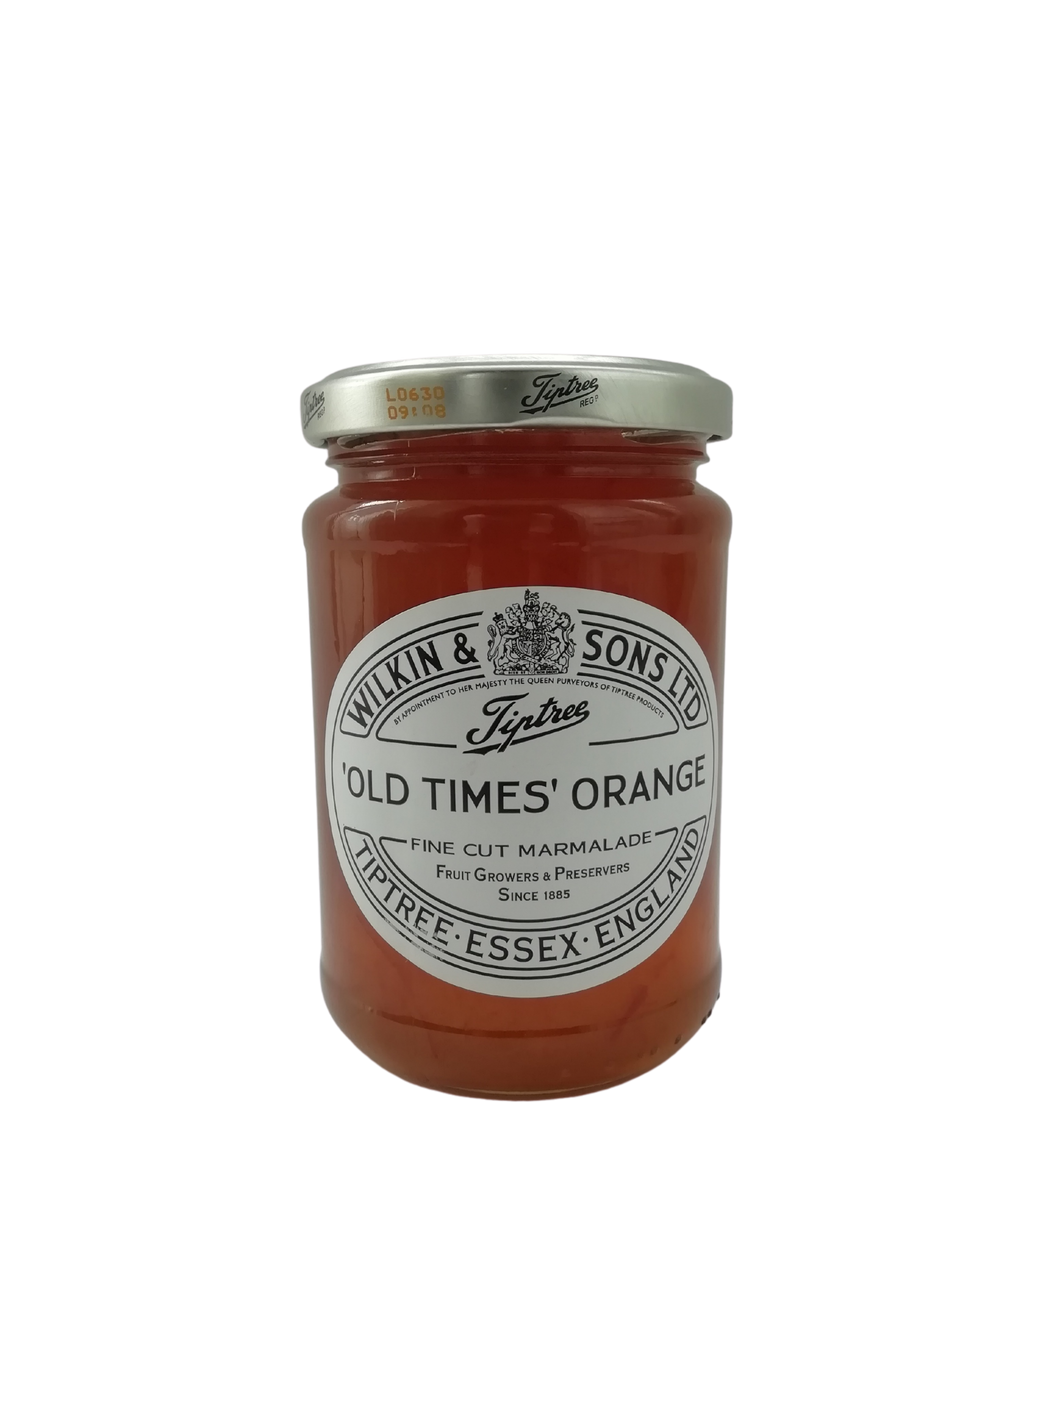 WILKIN & SONS TIPTREE OLD TIMES ORANGE 340G